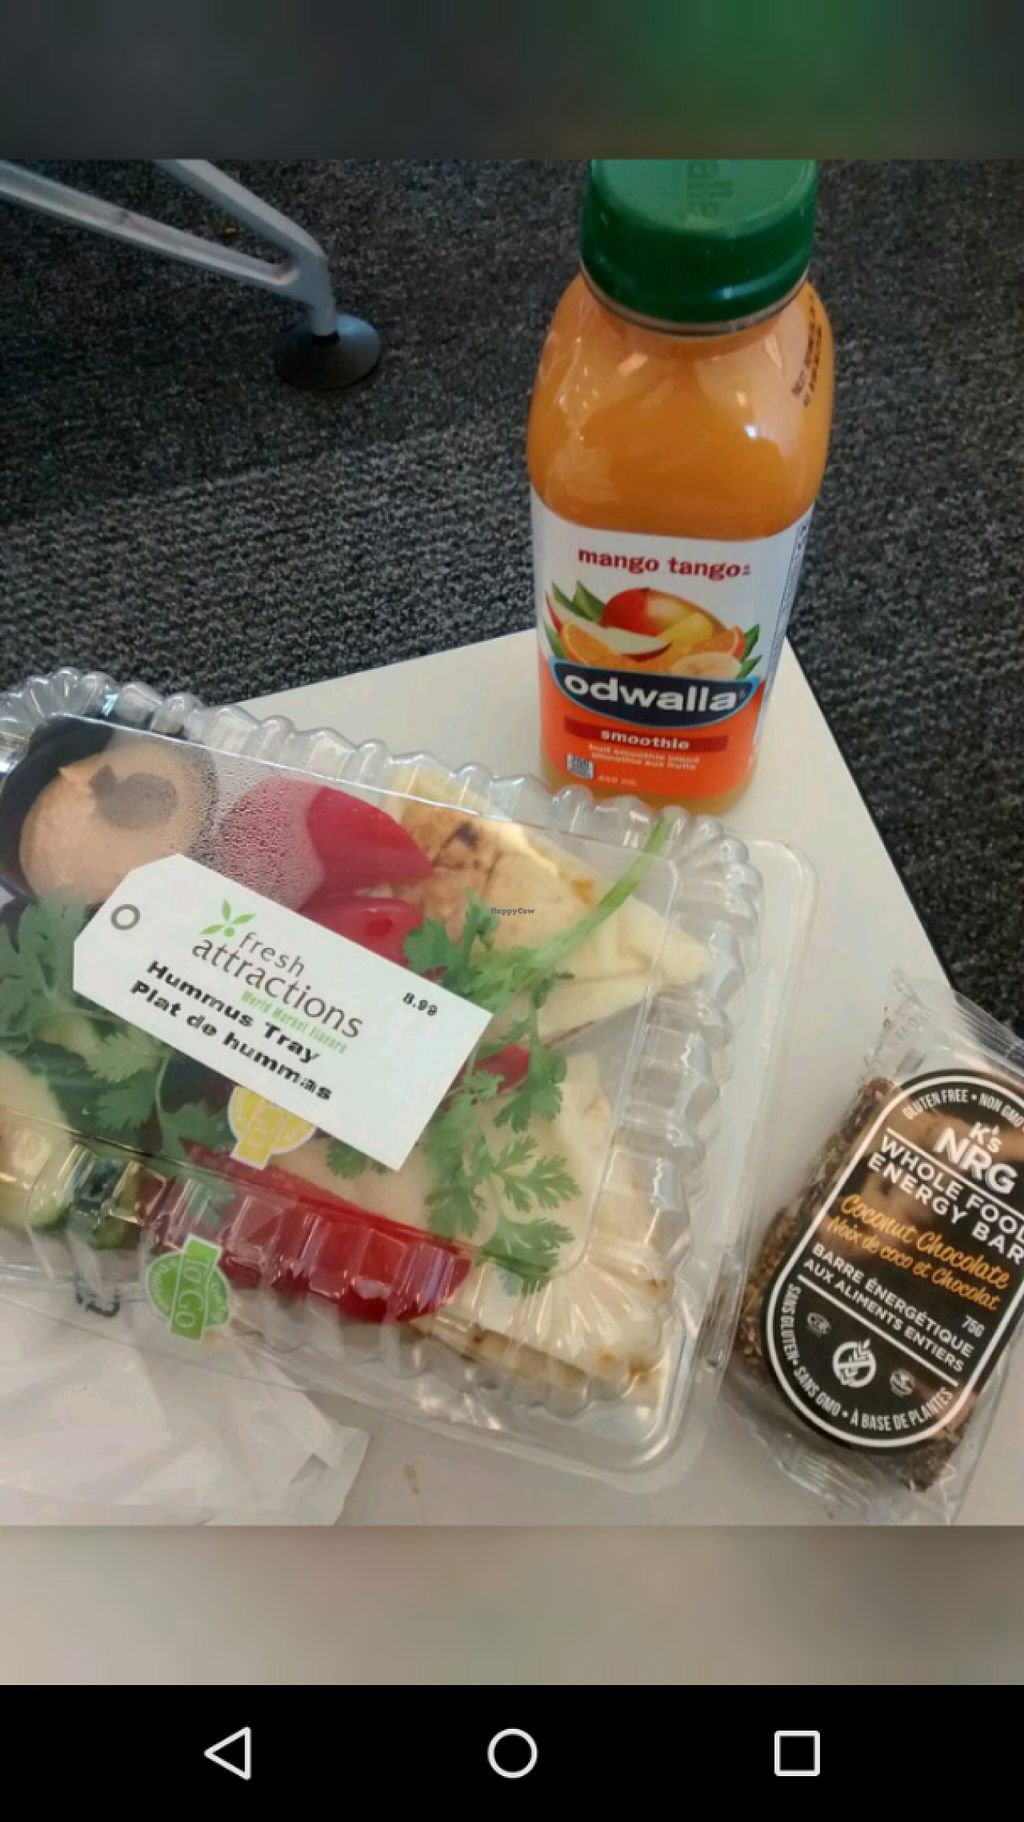 """Photo of Bar 120  by <a href=""""/members/profile/QuothTheRaven"""">QuothTheRaven</a> <br/>Hummus, smoothie and bar <br/> June 14, 2016  - <a href='/contact/abuse/image/28411/153868'>Report</a>"""